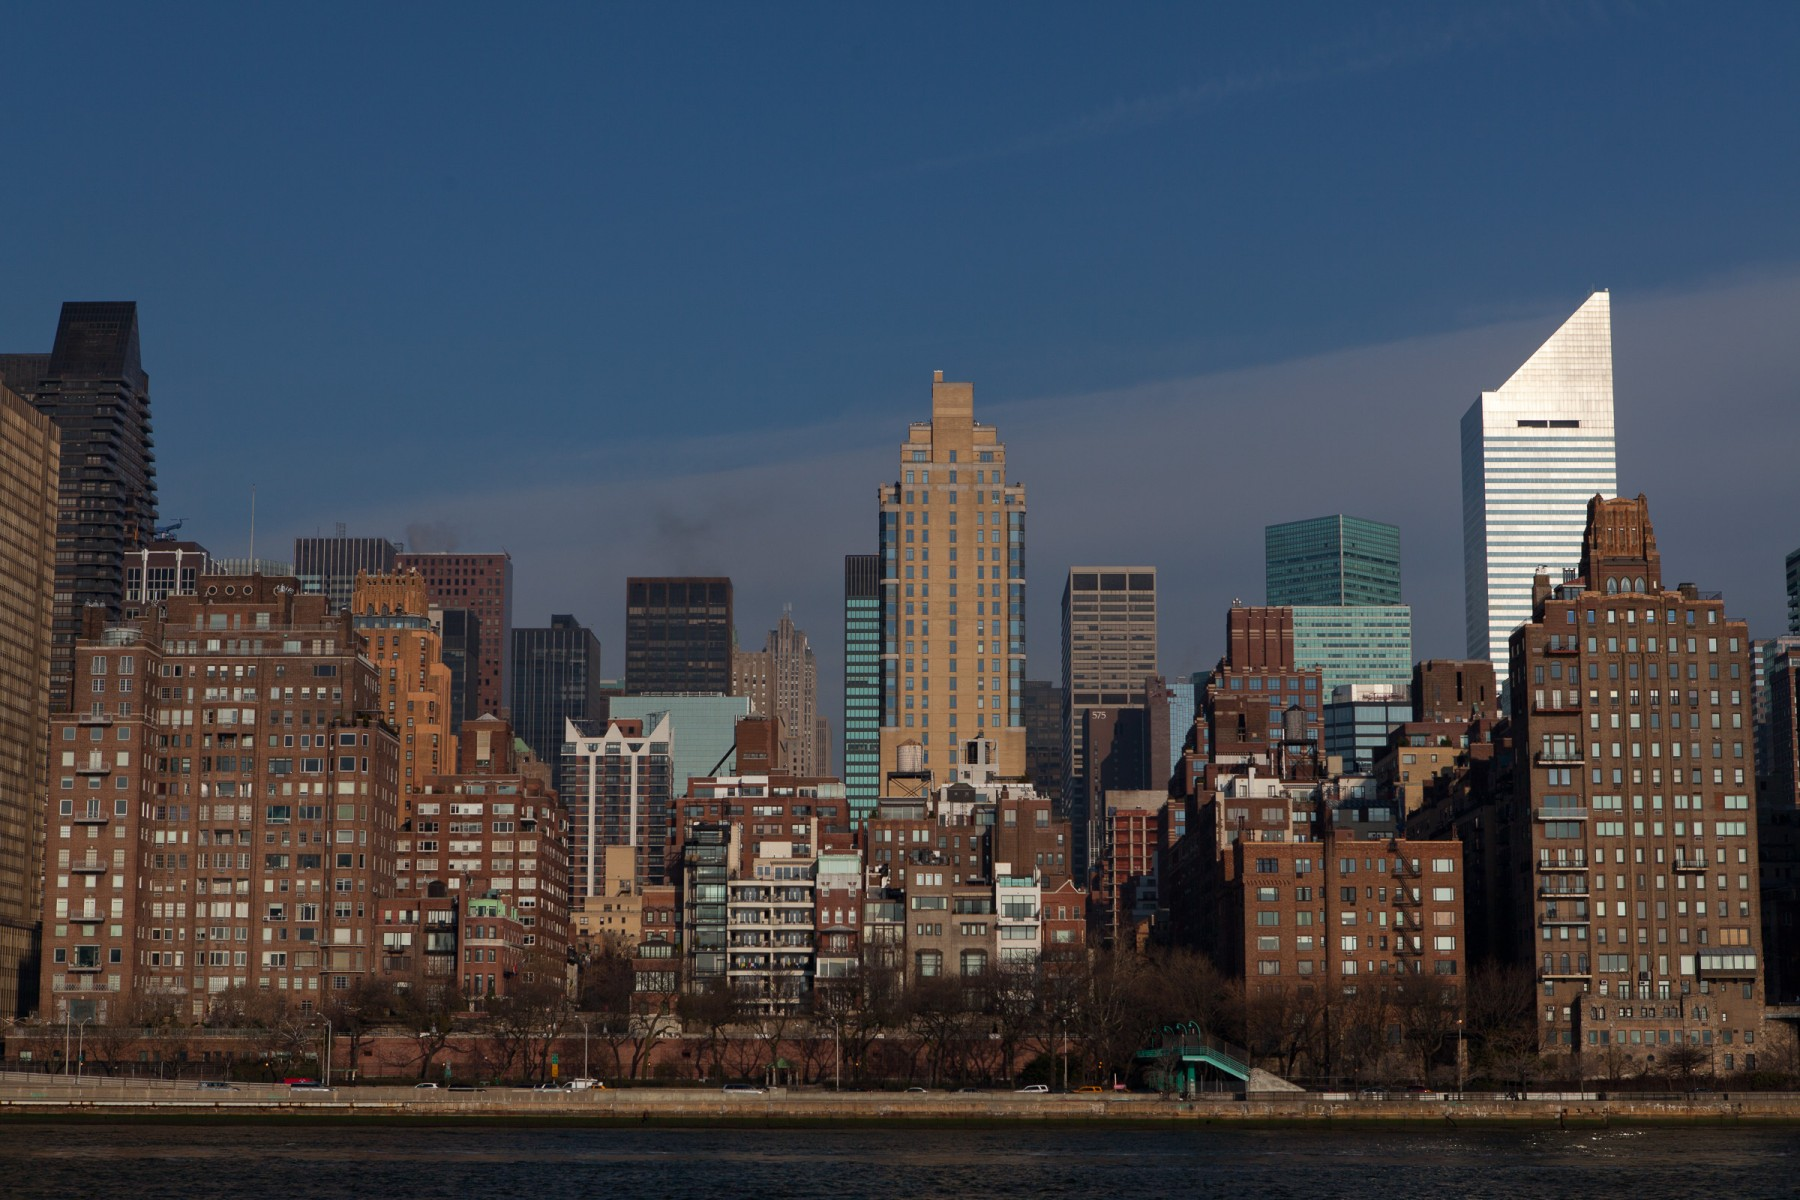 View Across the East River from Roosevelt Island, NYC.